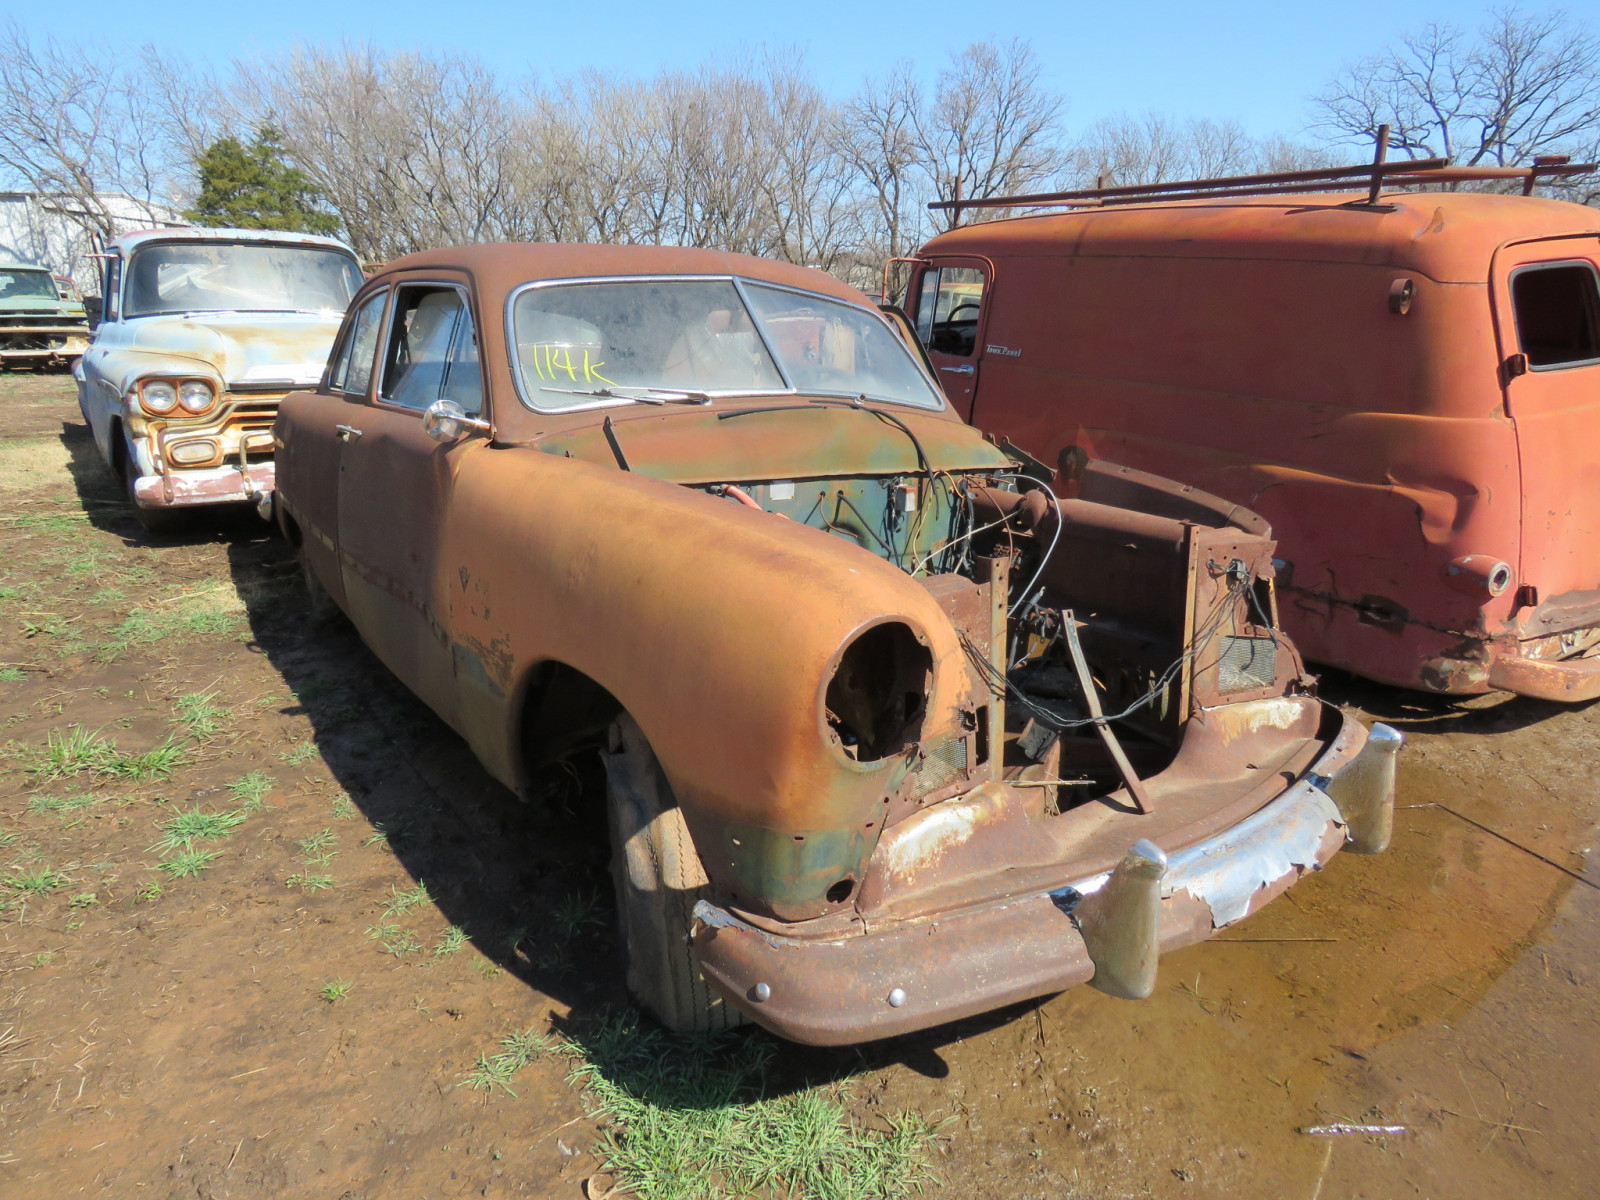 1950 Ford 2dr Sedan for Parts - Image 1